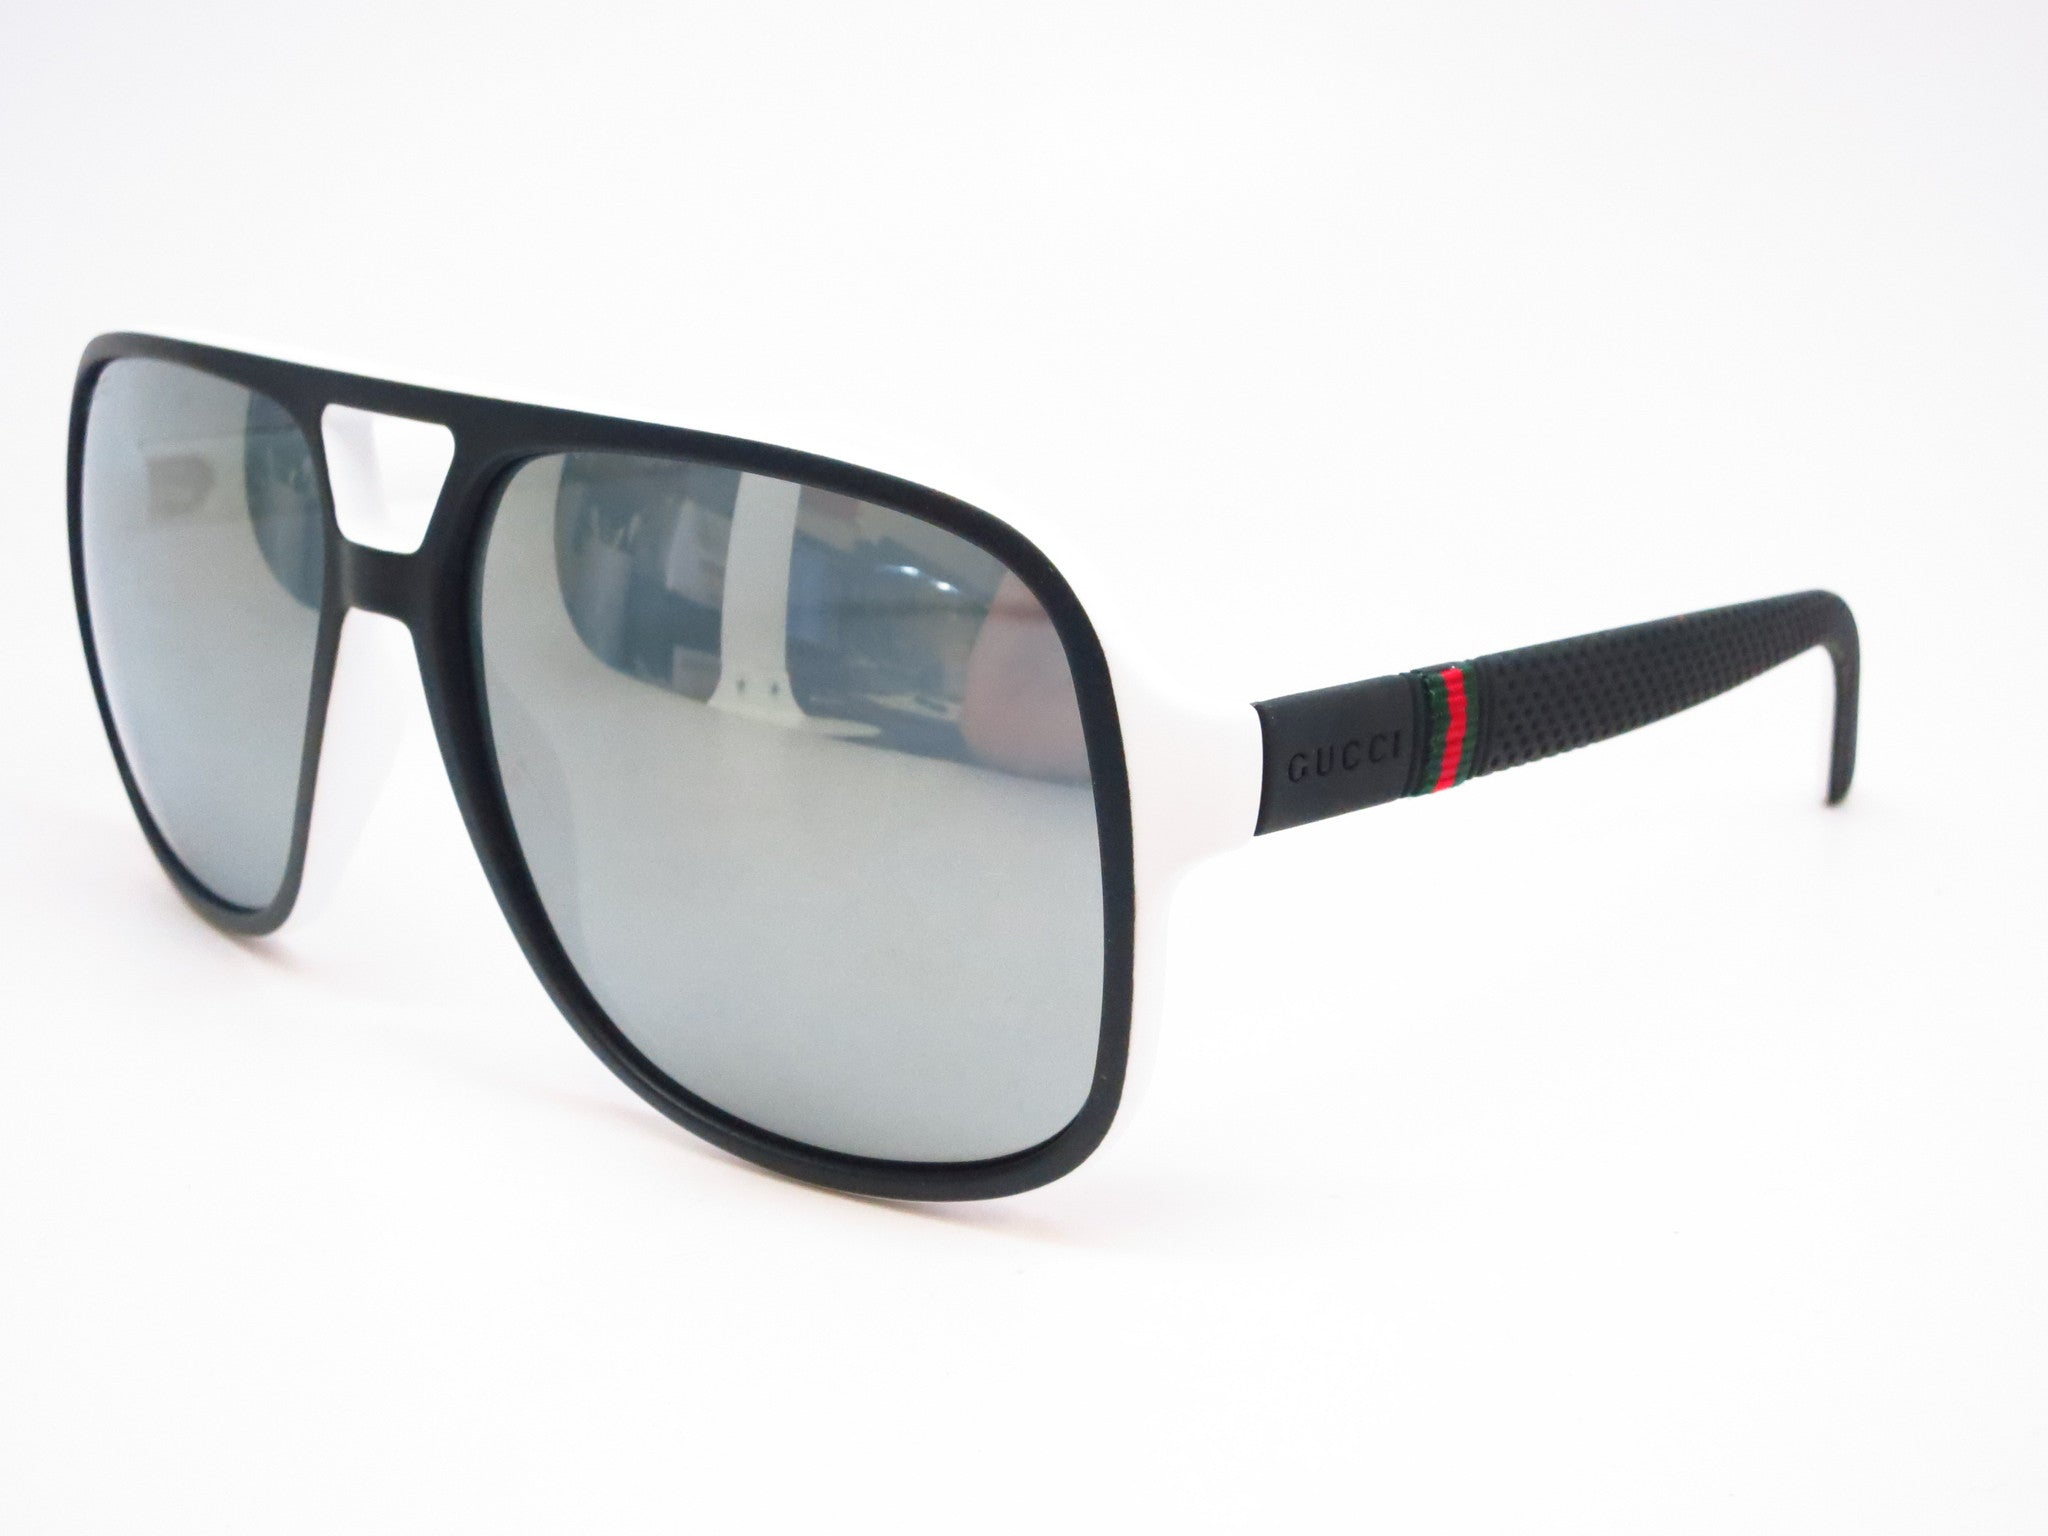 296b36c47c Gucci GG 1115 M1X T4 Black White Sunglasses - Eye Heart Shades - Gucci -